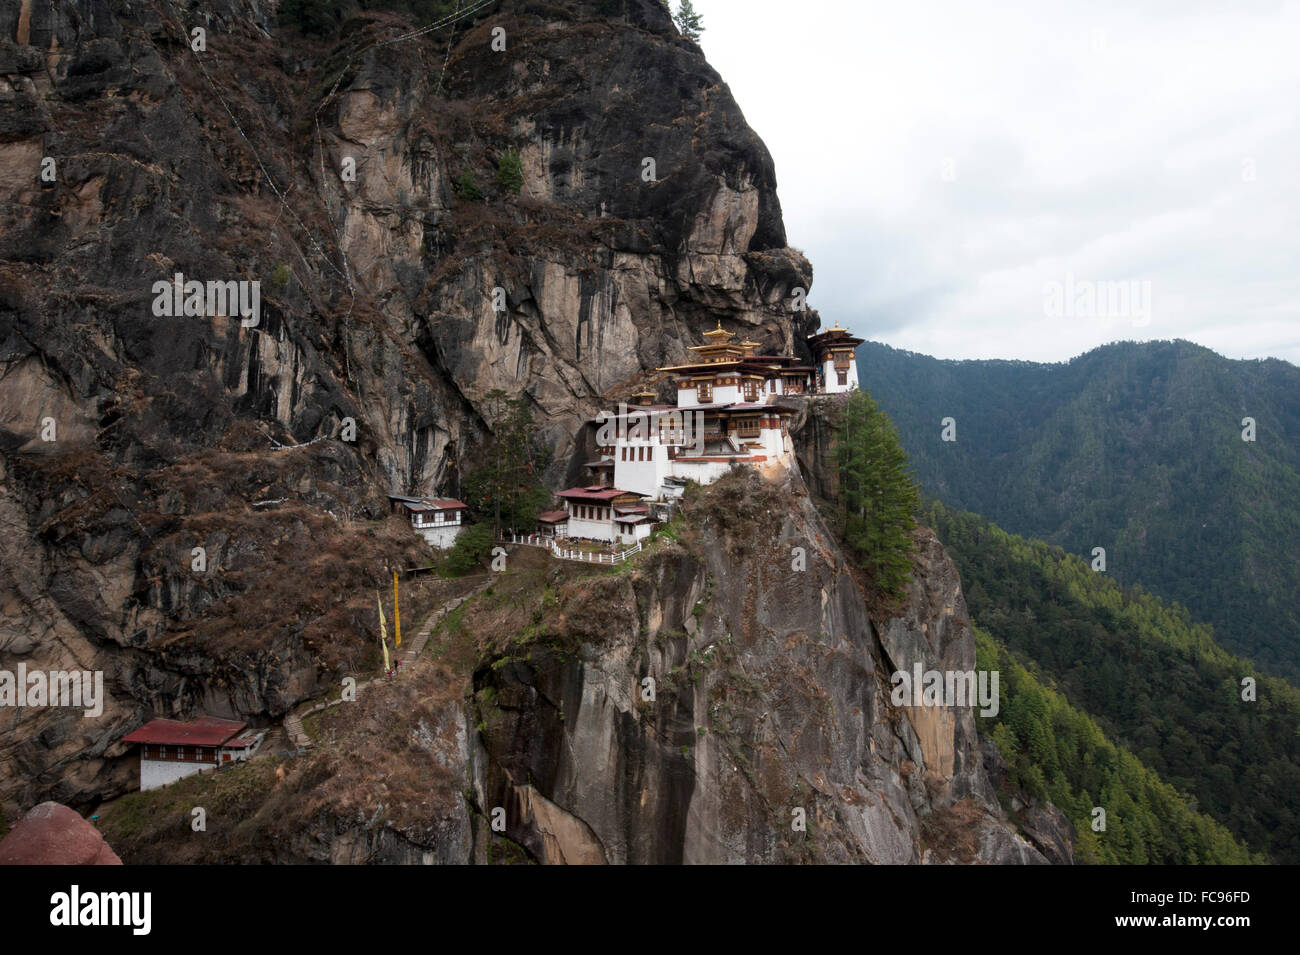 Taktsang Palphug Monastery (Tiger's Nest monastery), a prominent sacred Buddhist site clinging to rock at 3120 - Stock Image